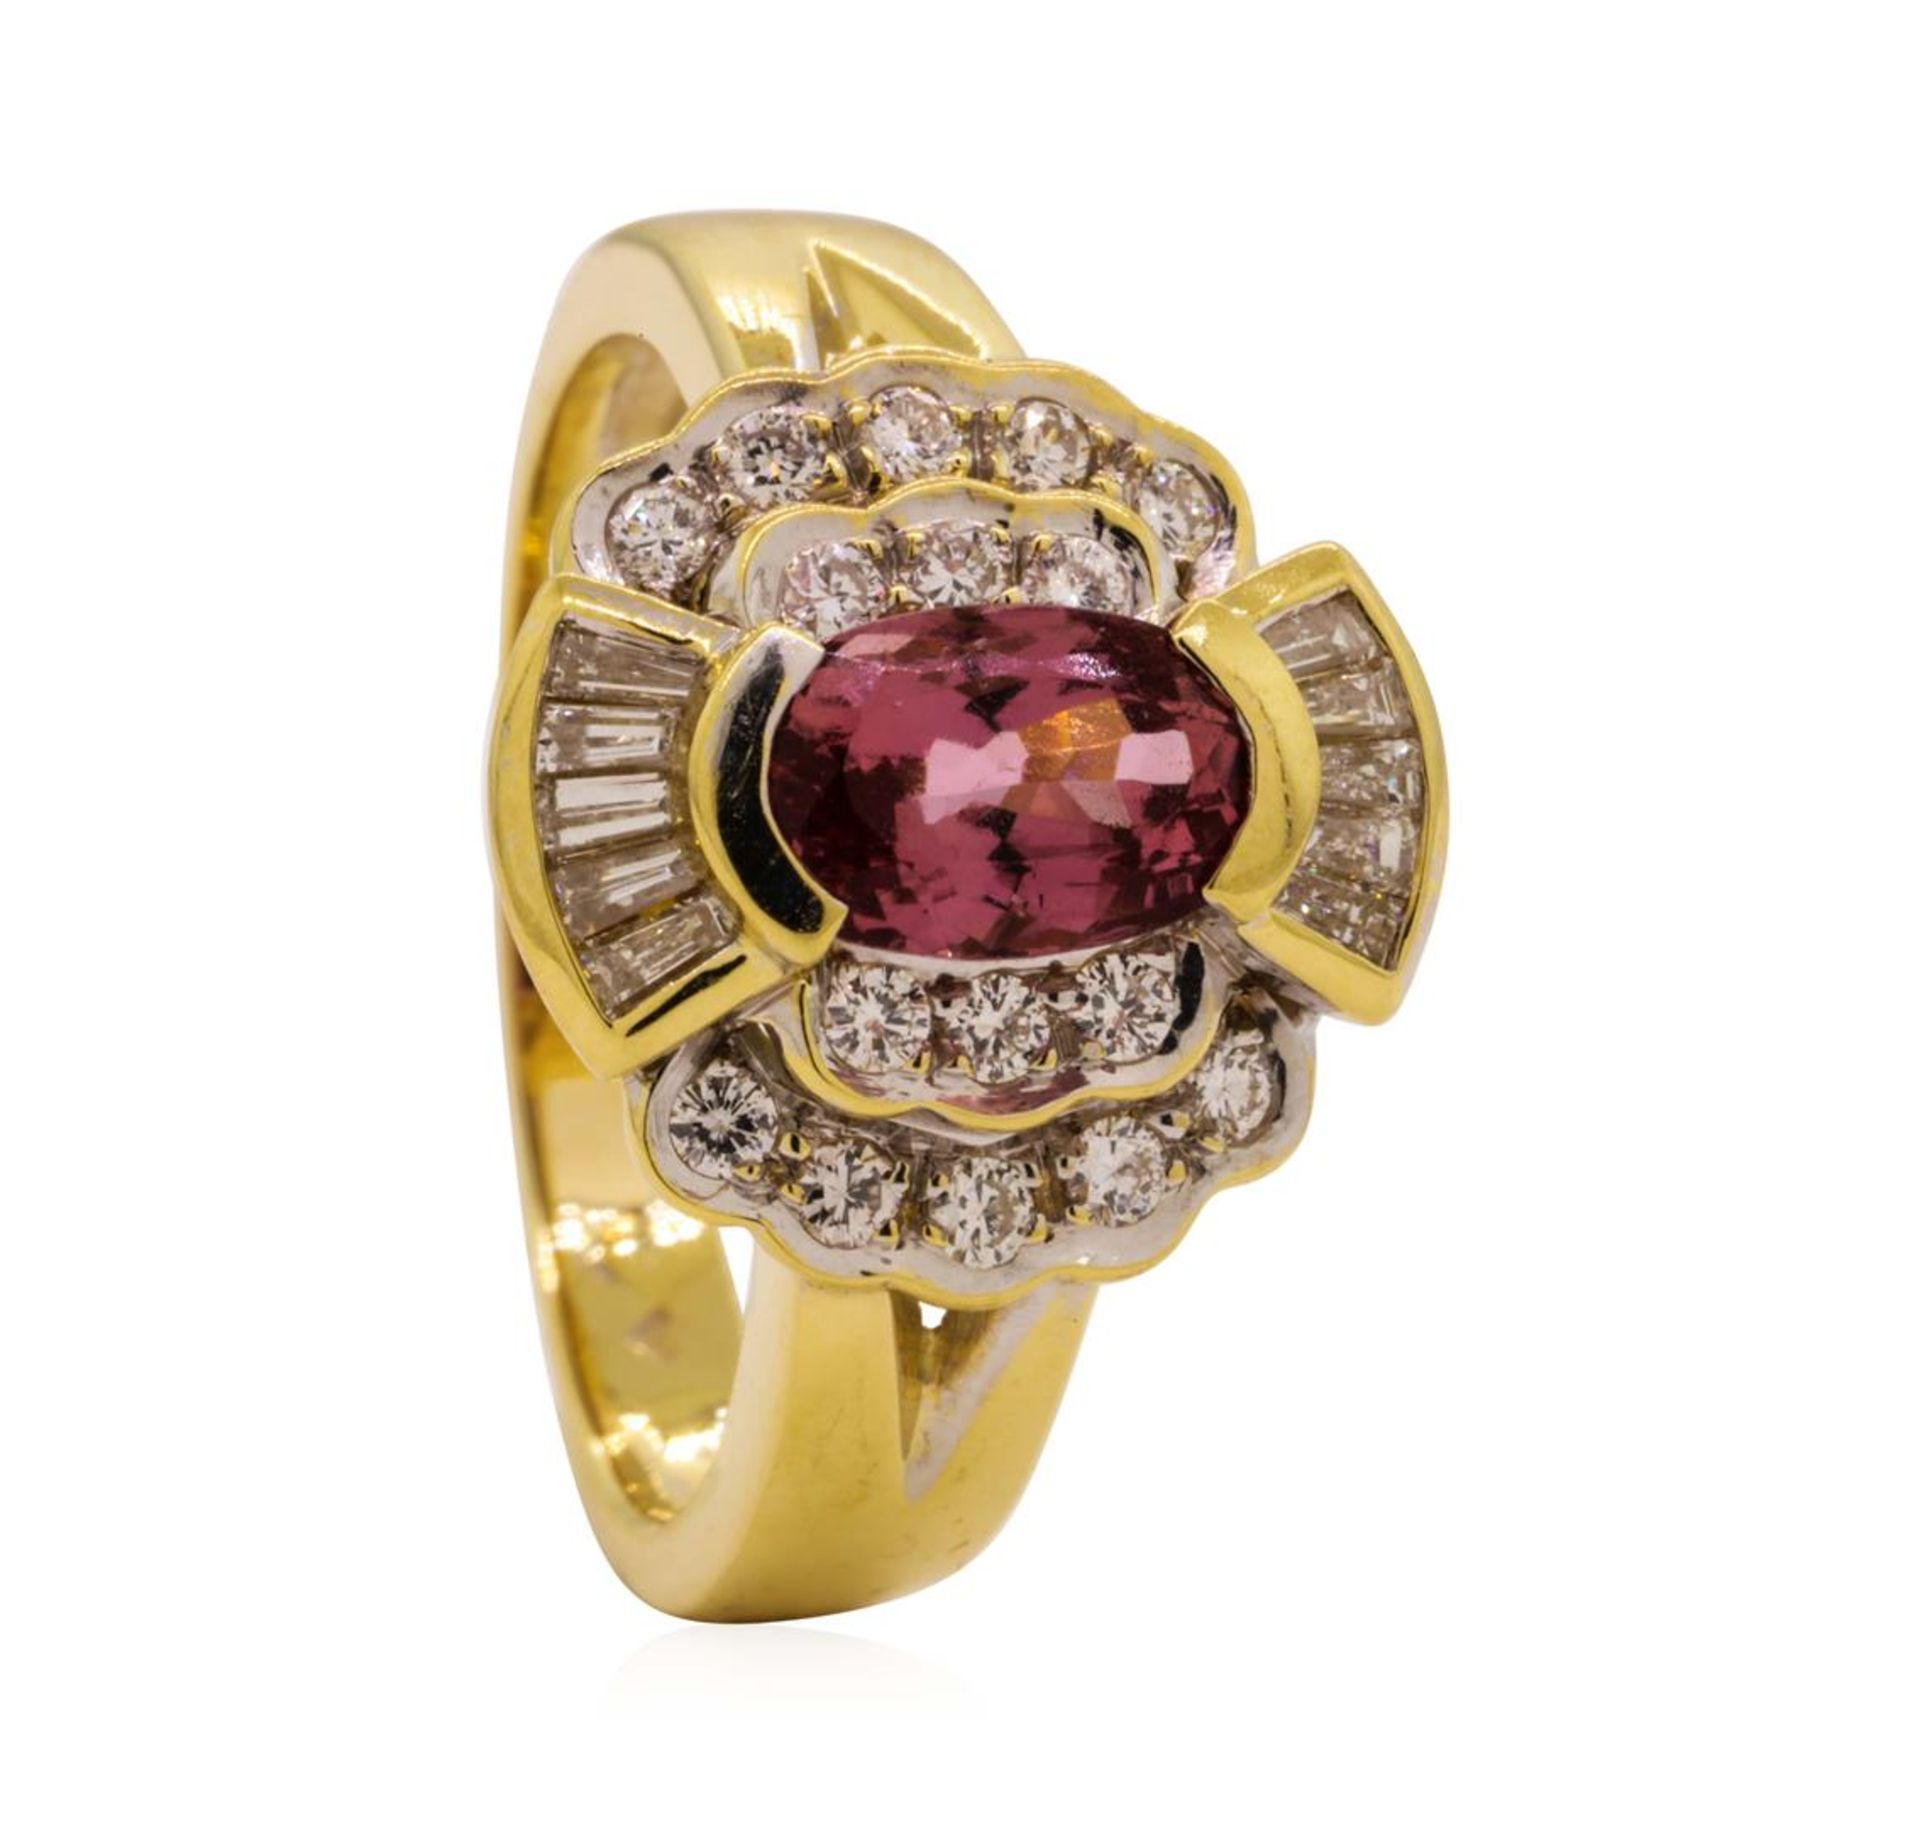 1.82 ctw Pink Spinel and Diamond Ring - 18KT Yellow Gold - Image 4 of 5